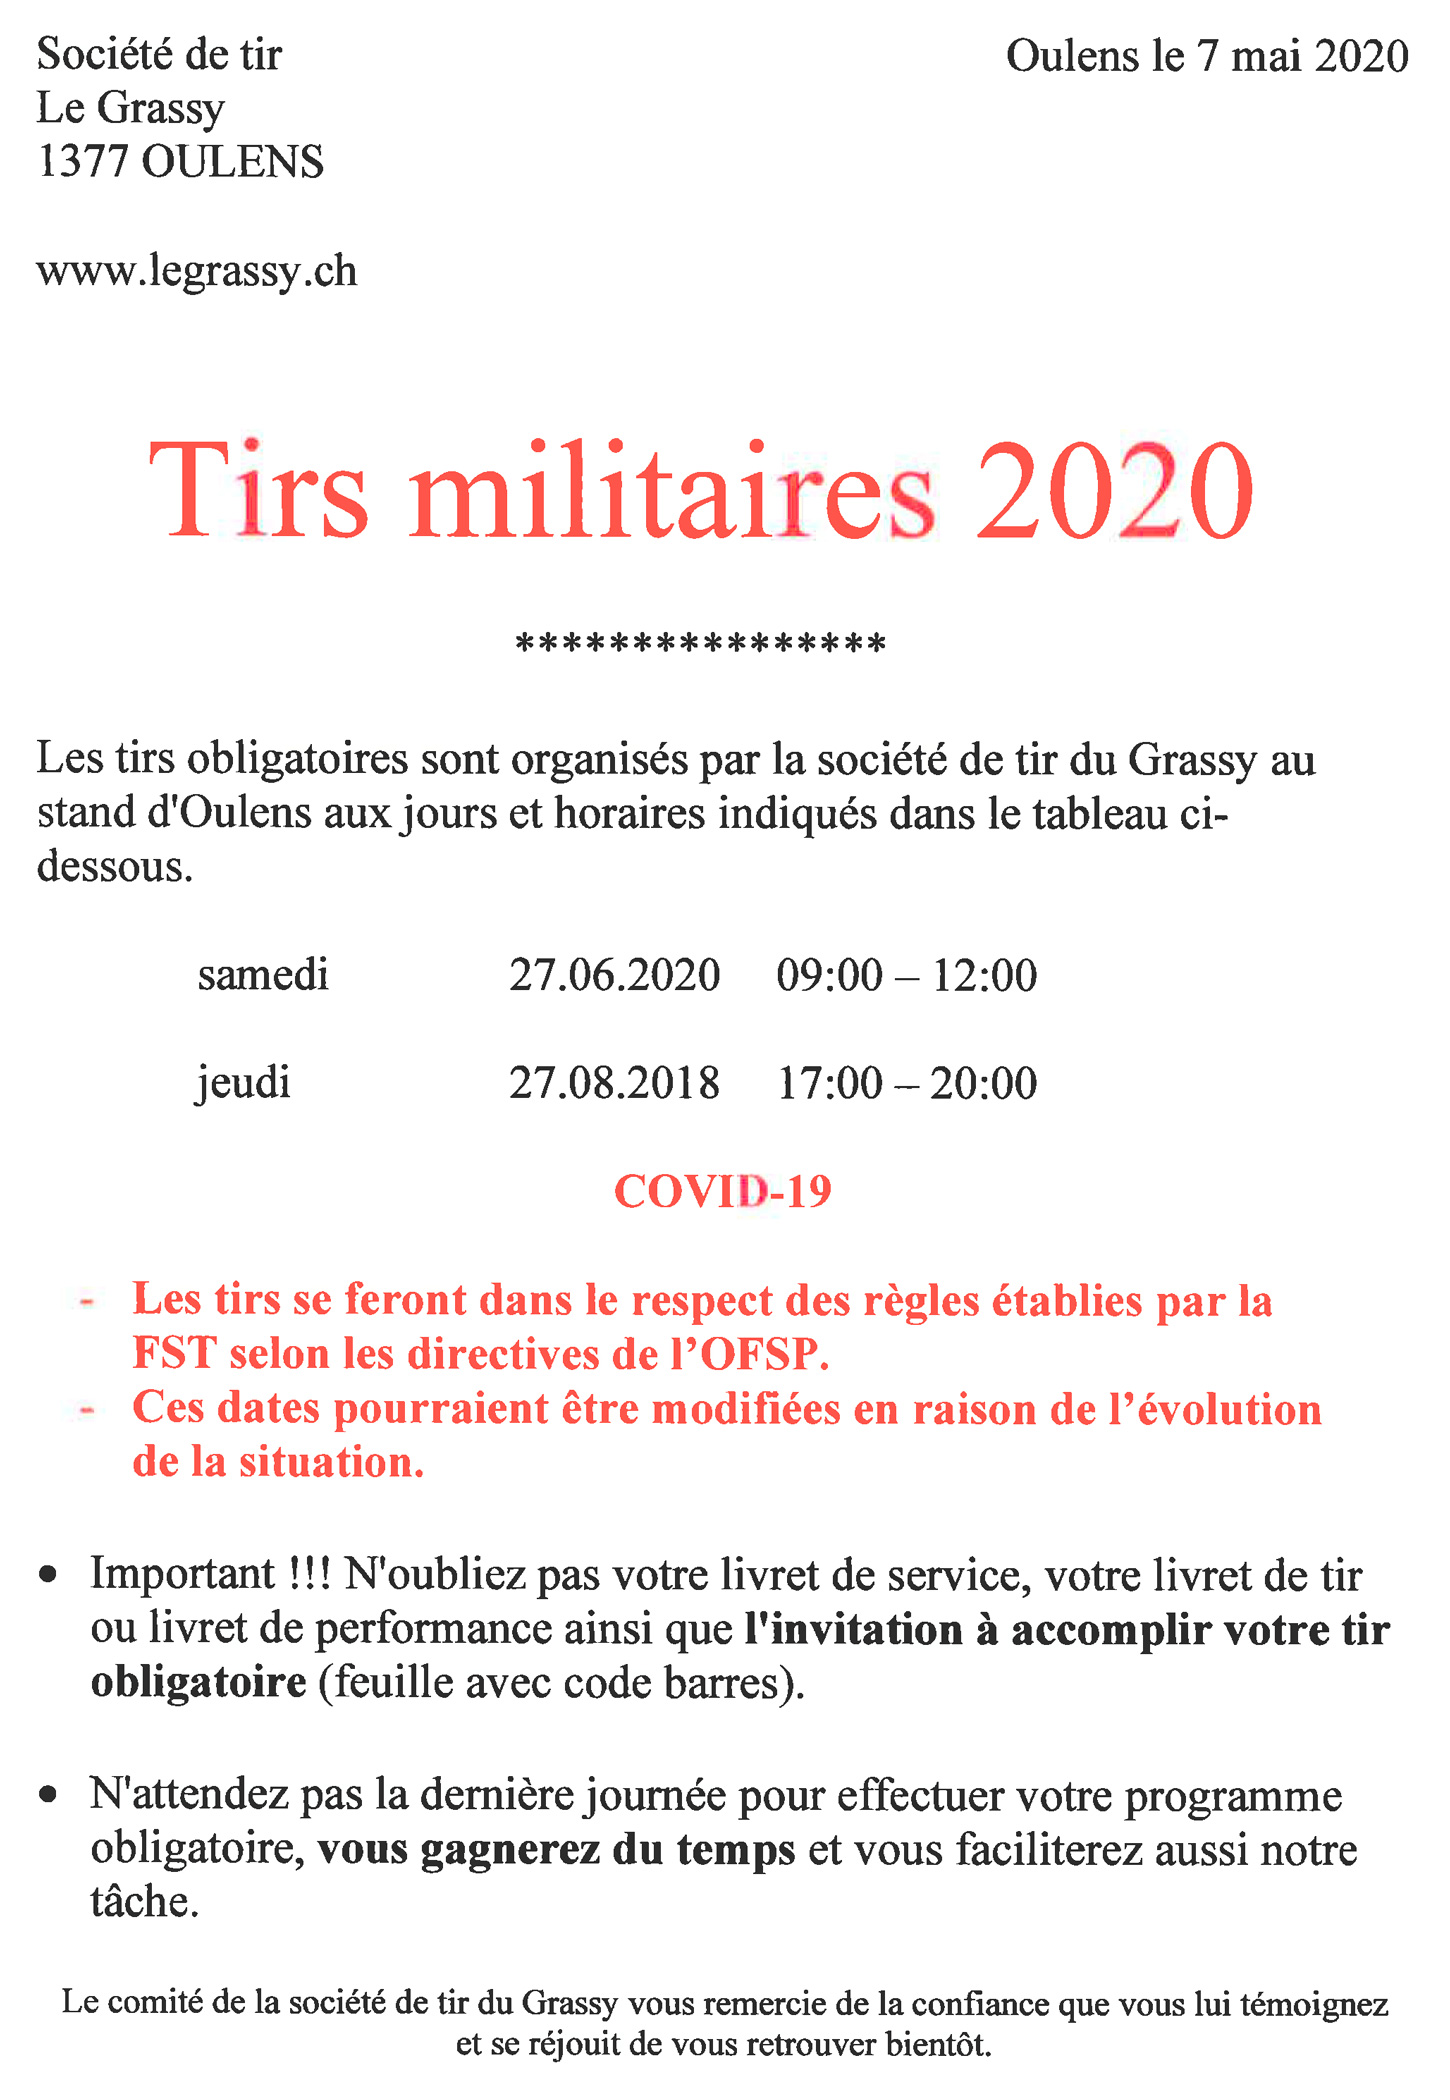 2020 tirs militaires